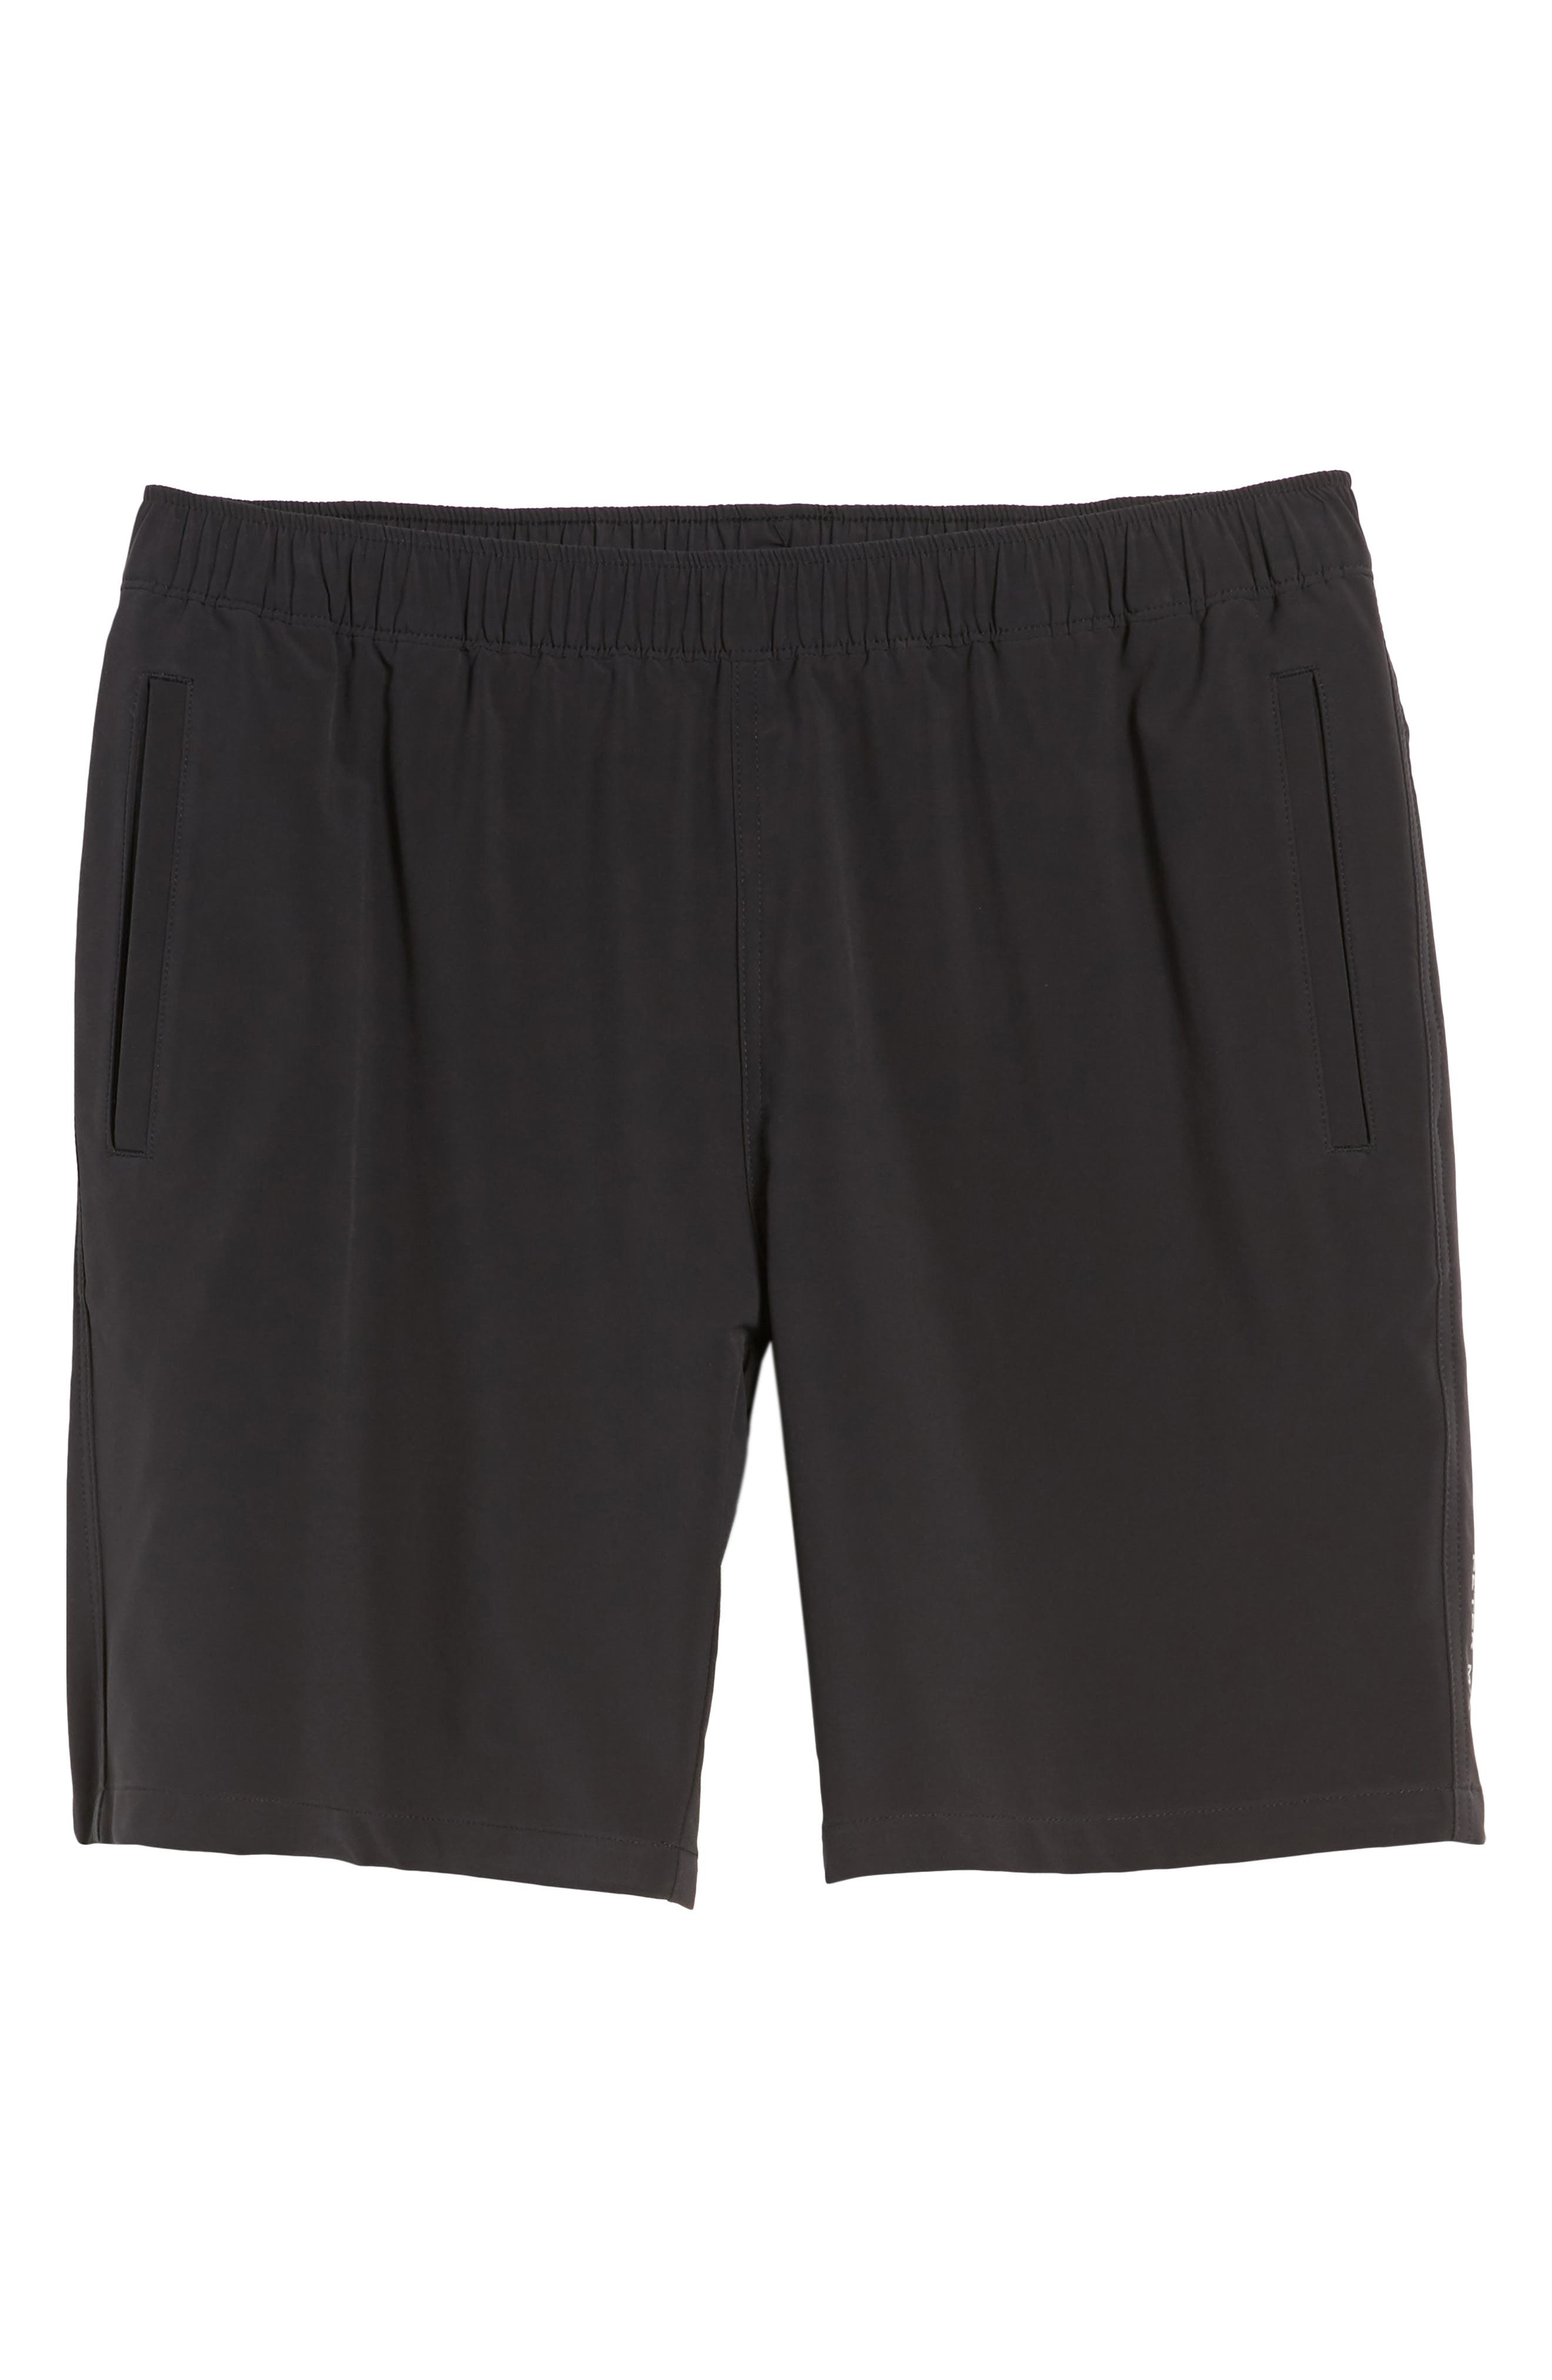 Oslo Sport Shorts,                             Alternate thumbnail 6, color,                             001